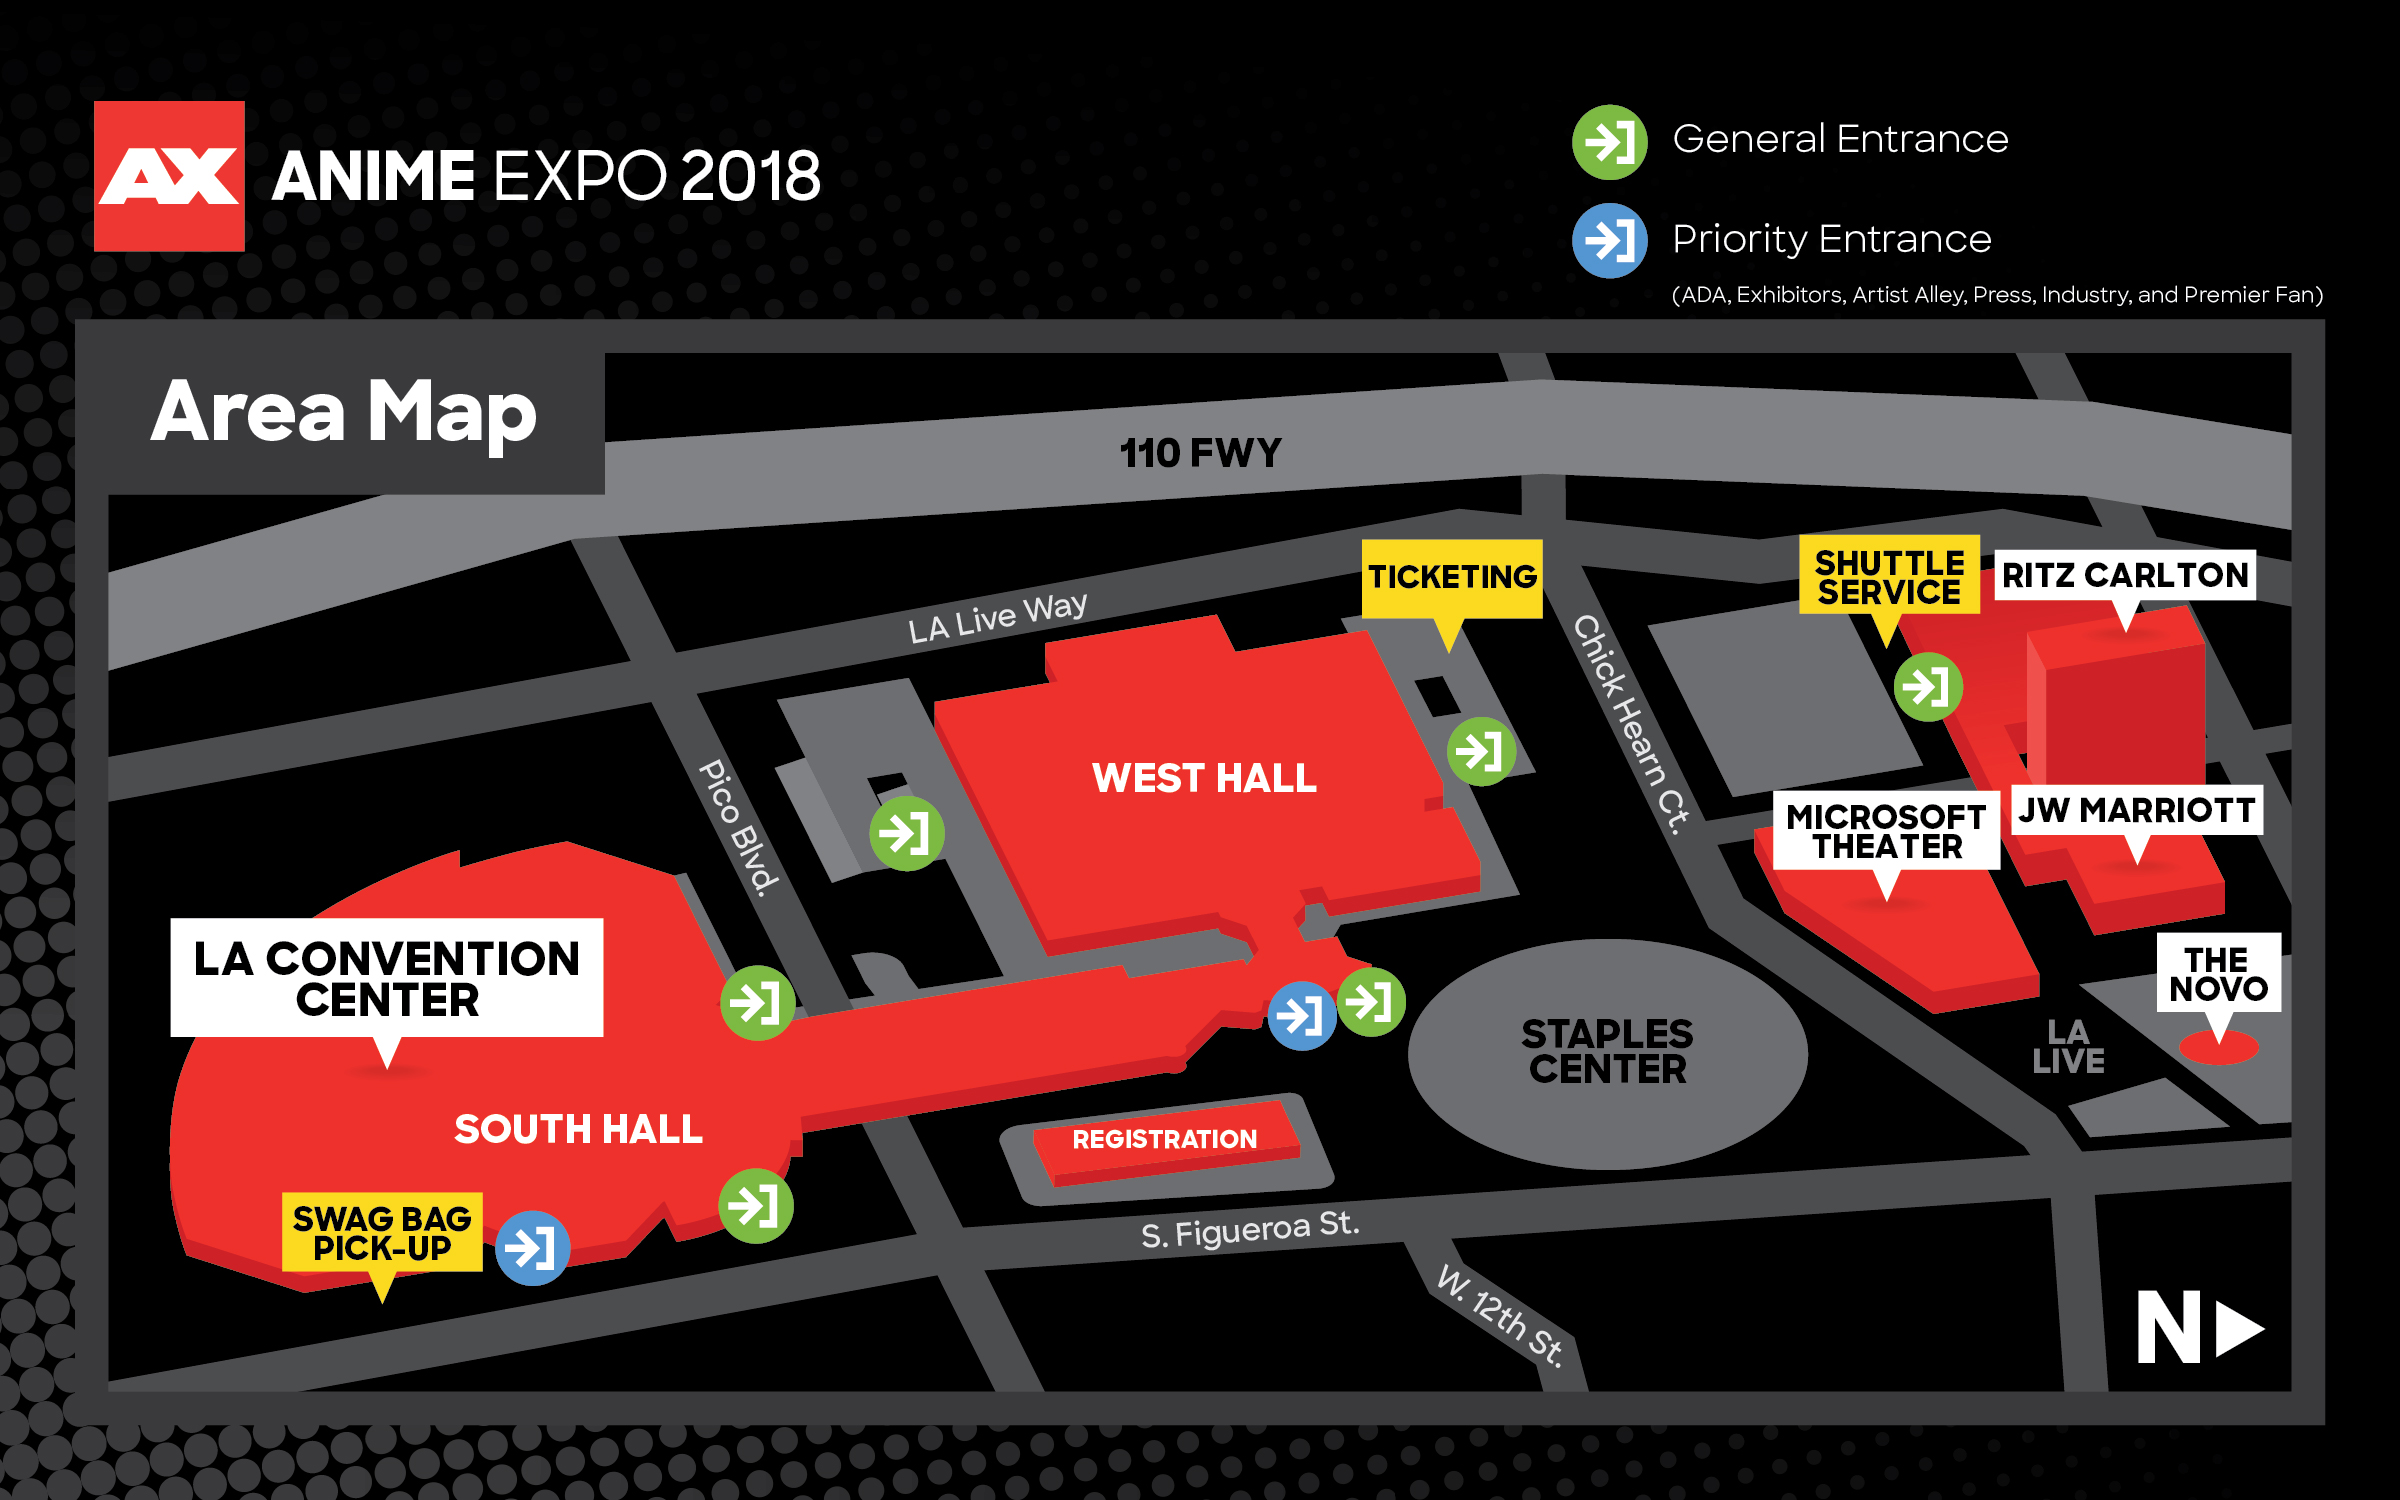 First Please See The Map Below To Where All Venues Being Used For Anime Expo 2018 As Well Important Locations Such Entrances